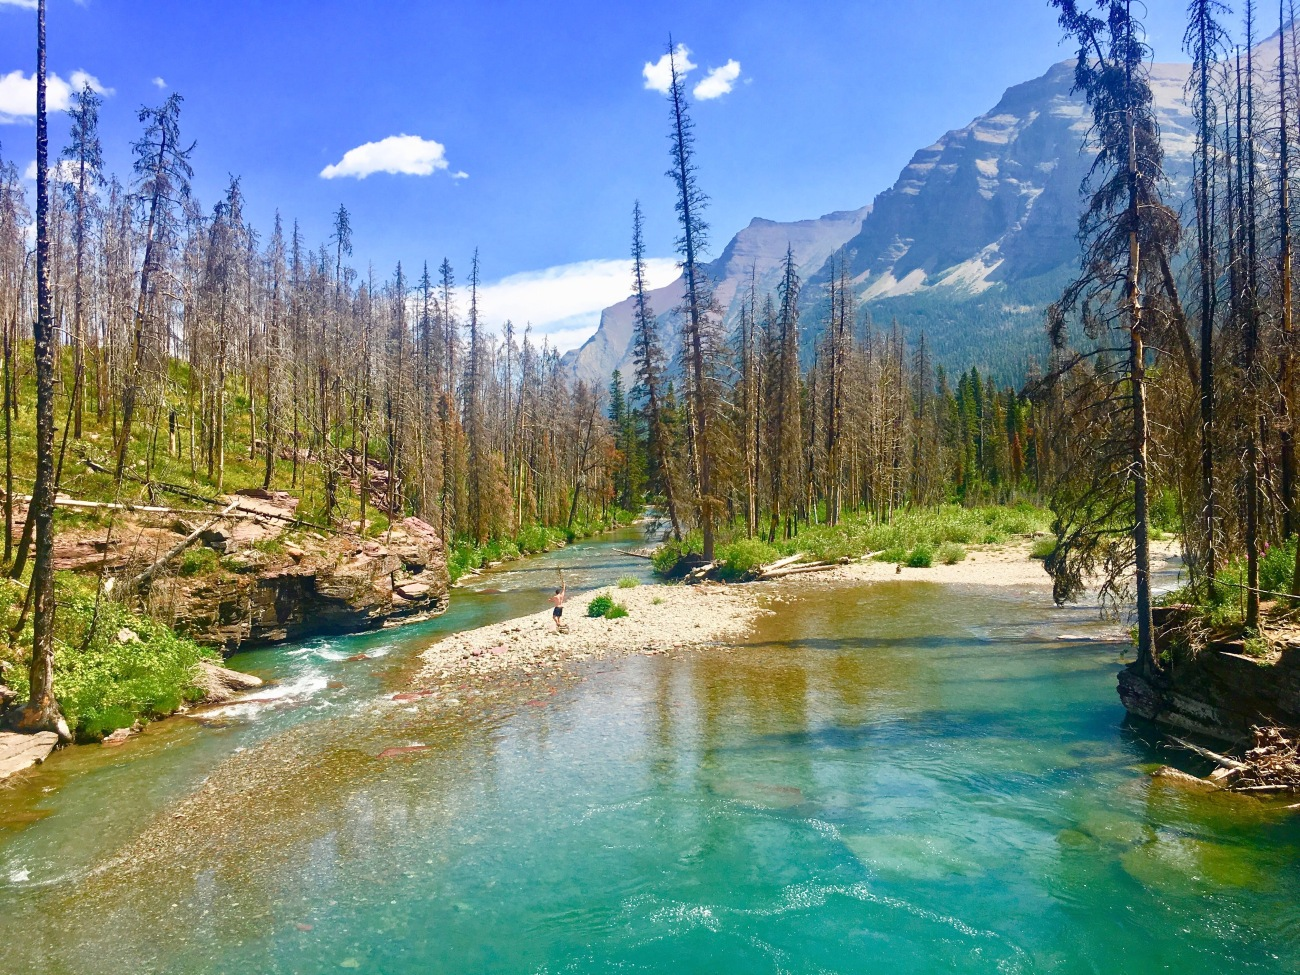 national parks, glacier national park, grinnell, highline, trail, hikes, adventure, forest, wildlife, wildflowers, nature lake saint mary